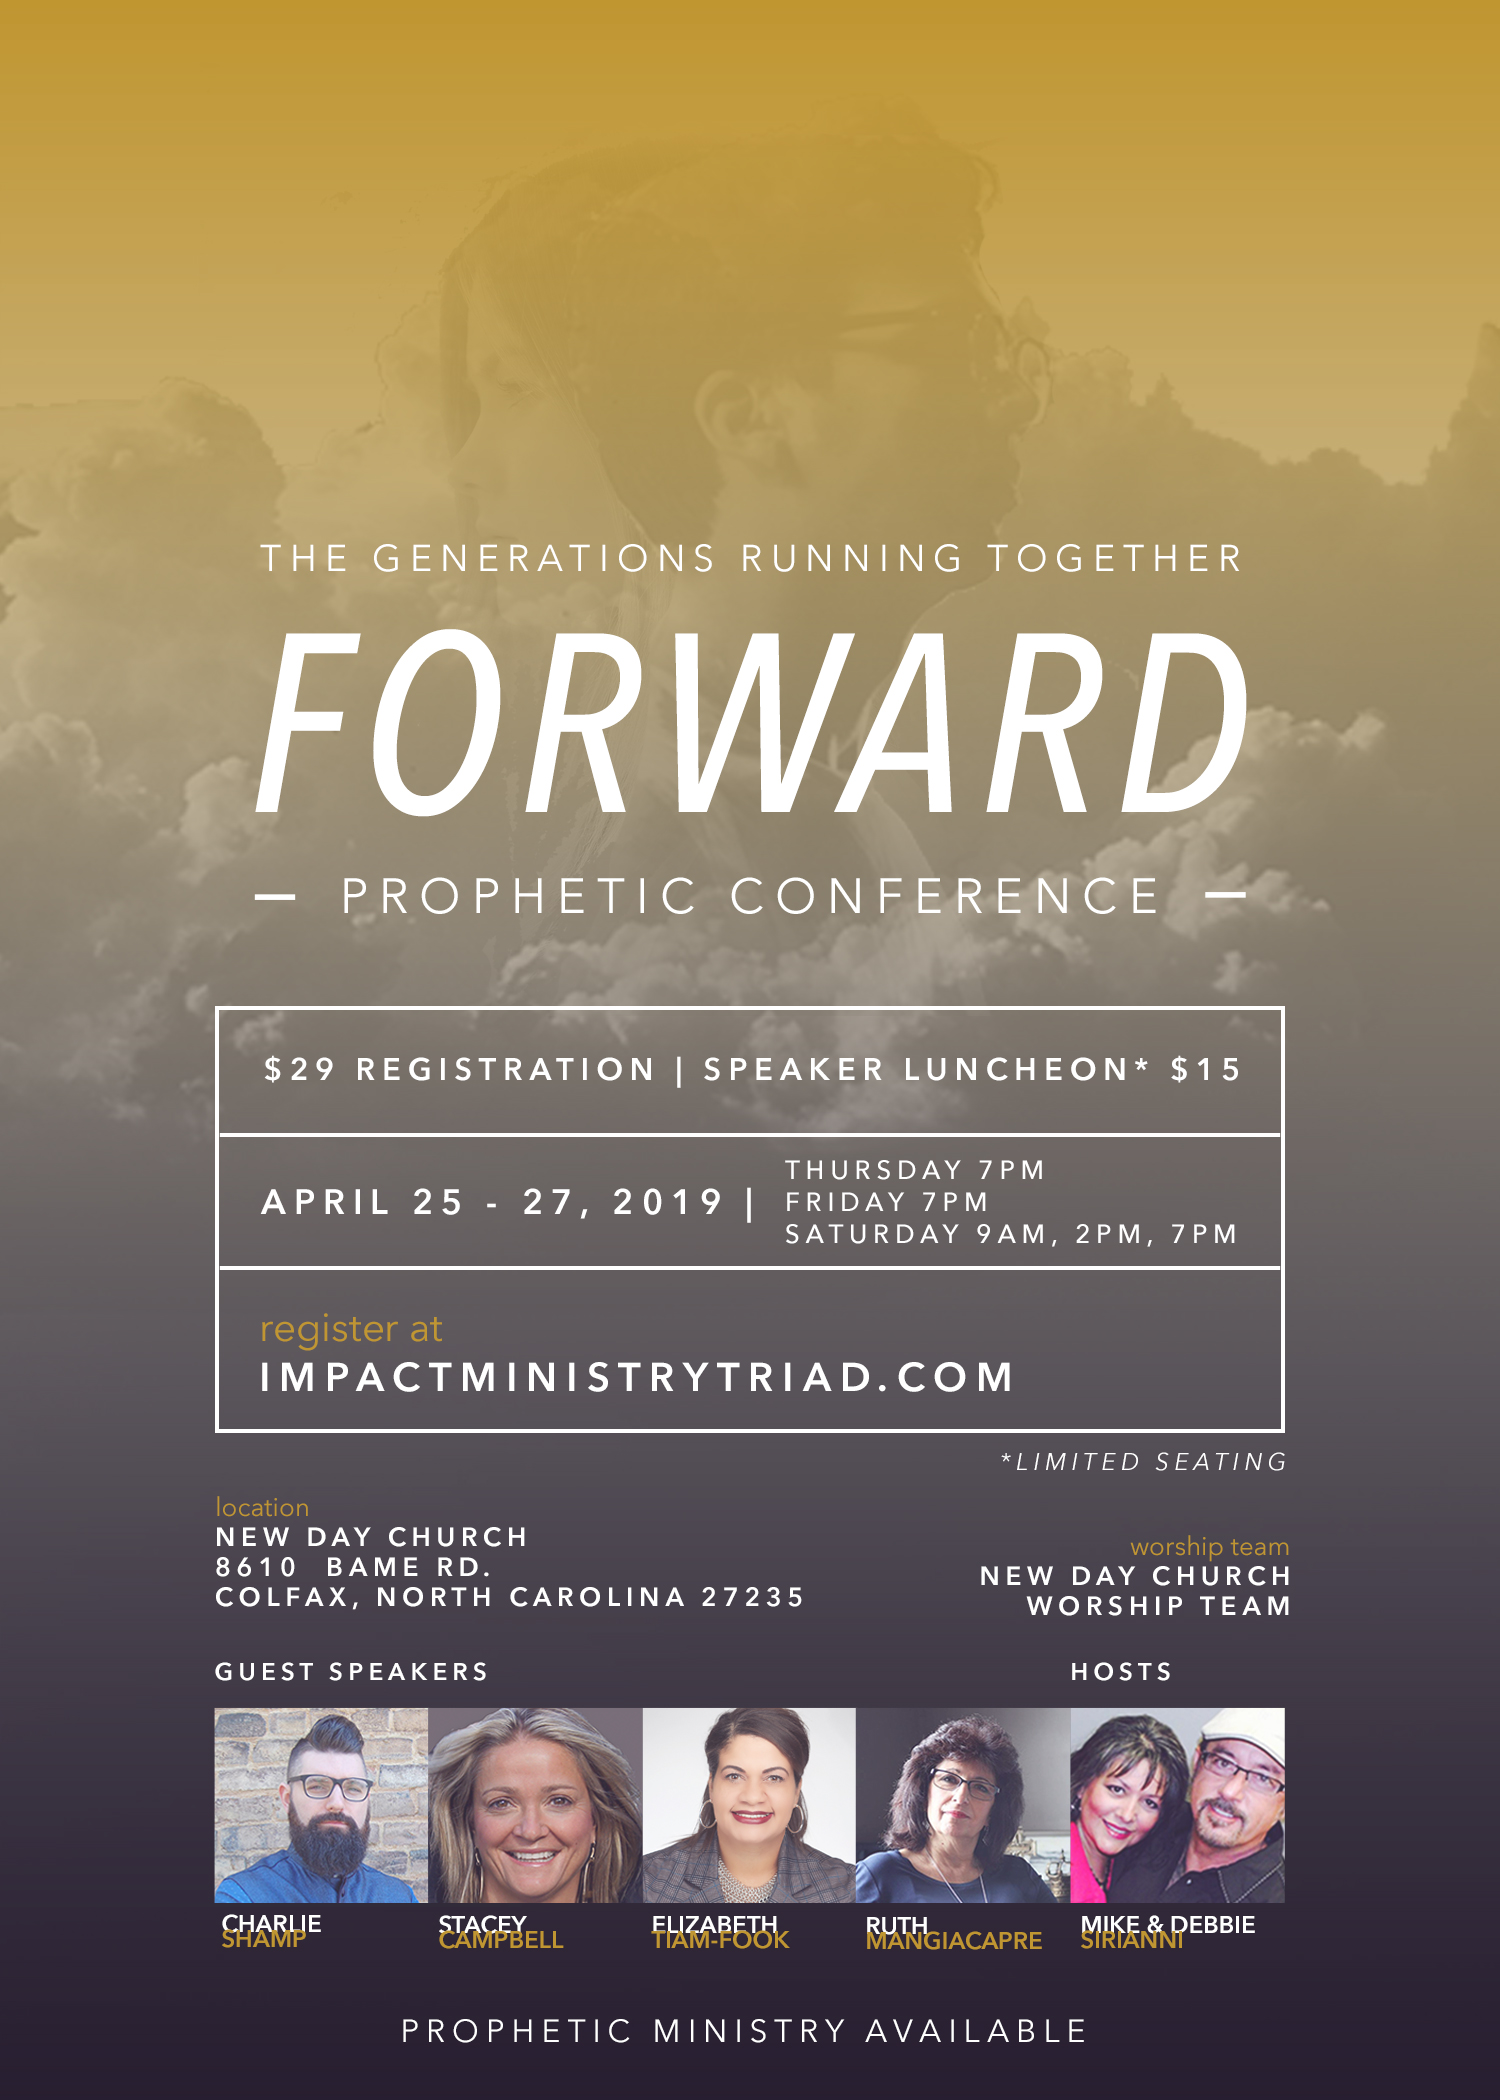 ForwardPropheticConference-Apr25-17.jpg